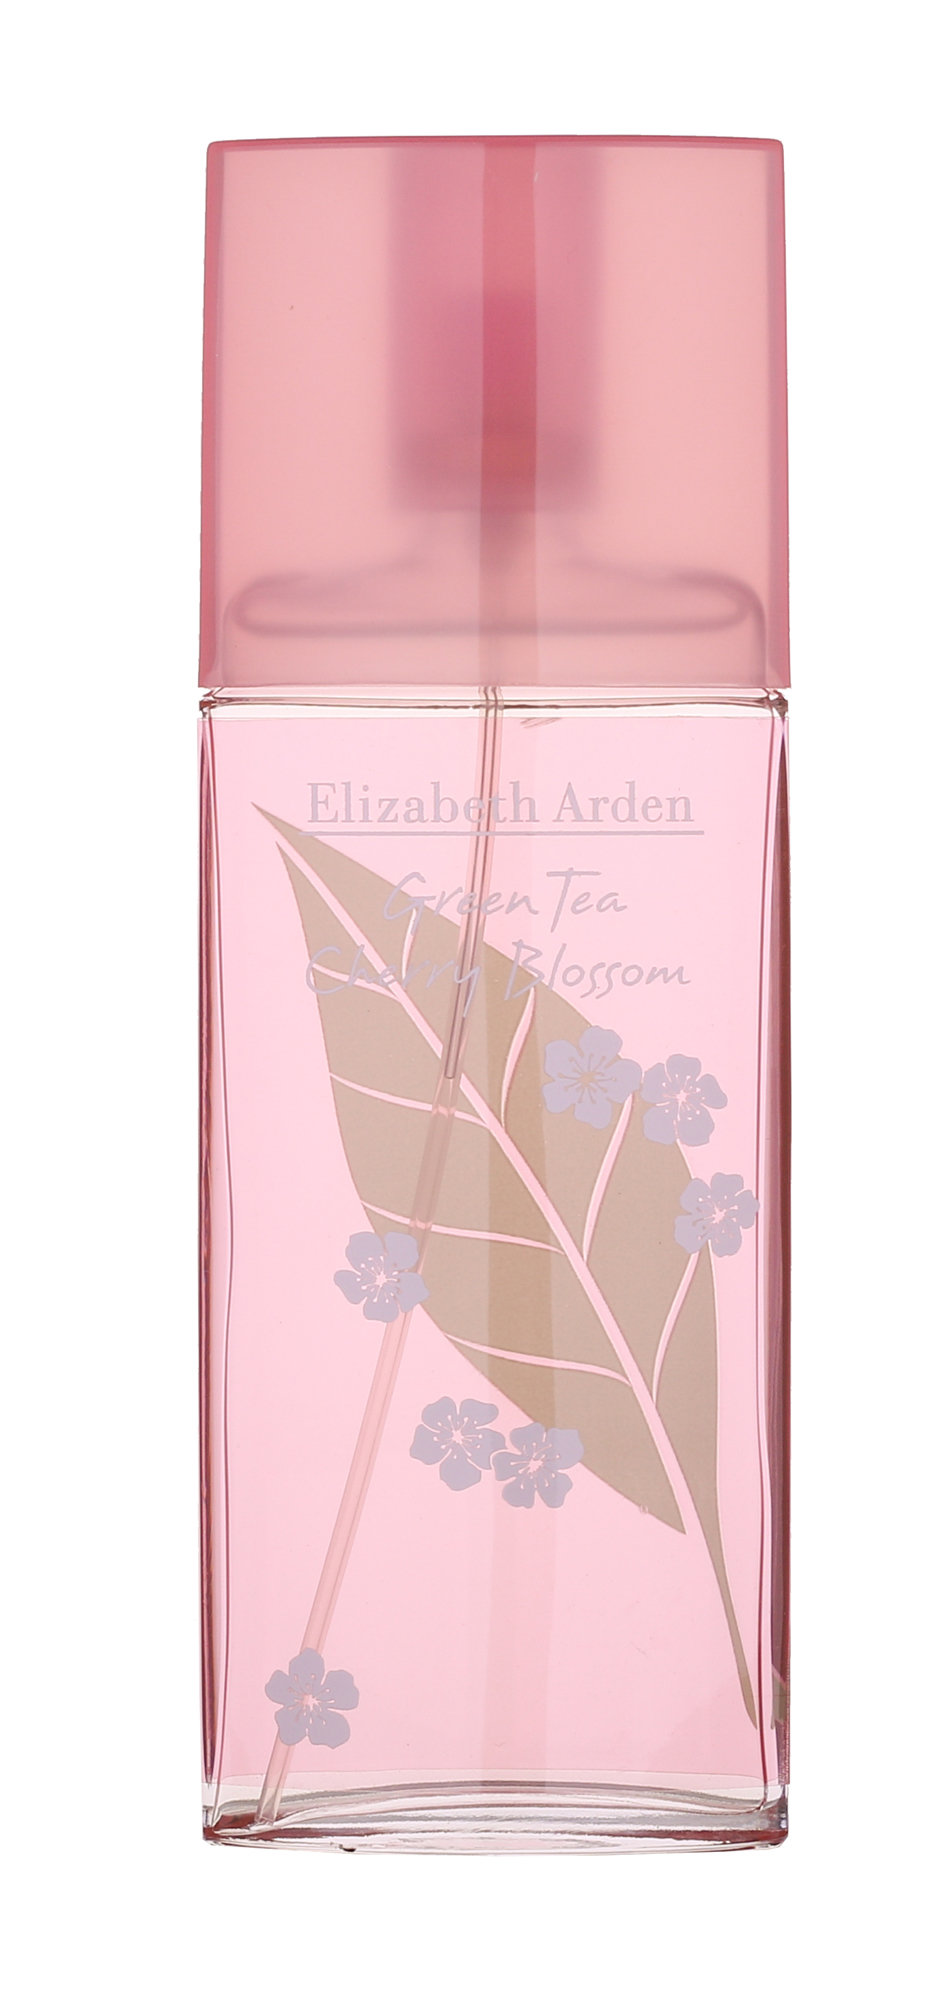 Elizabeth Arden Green Tea, edt 100ml